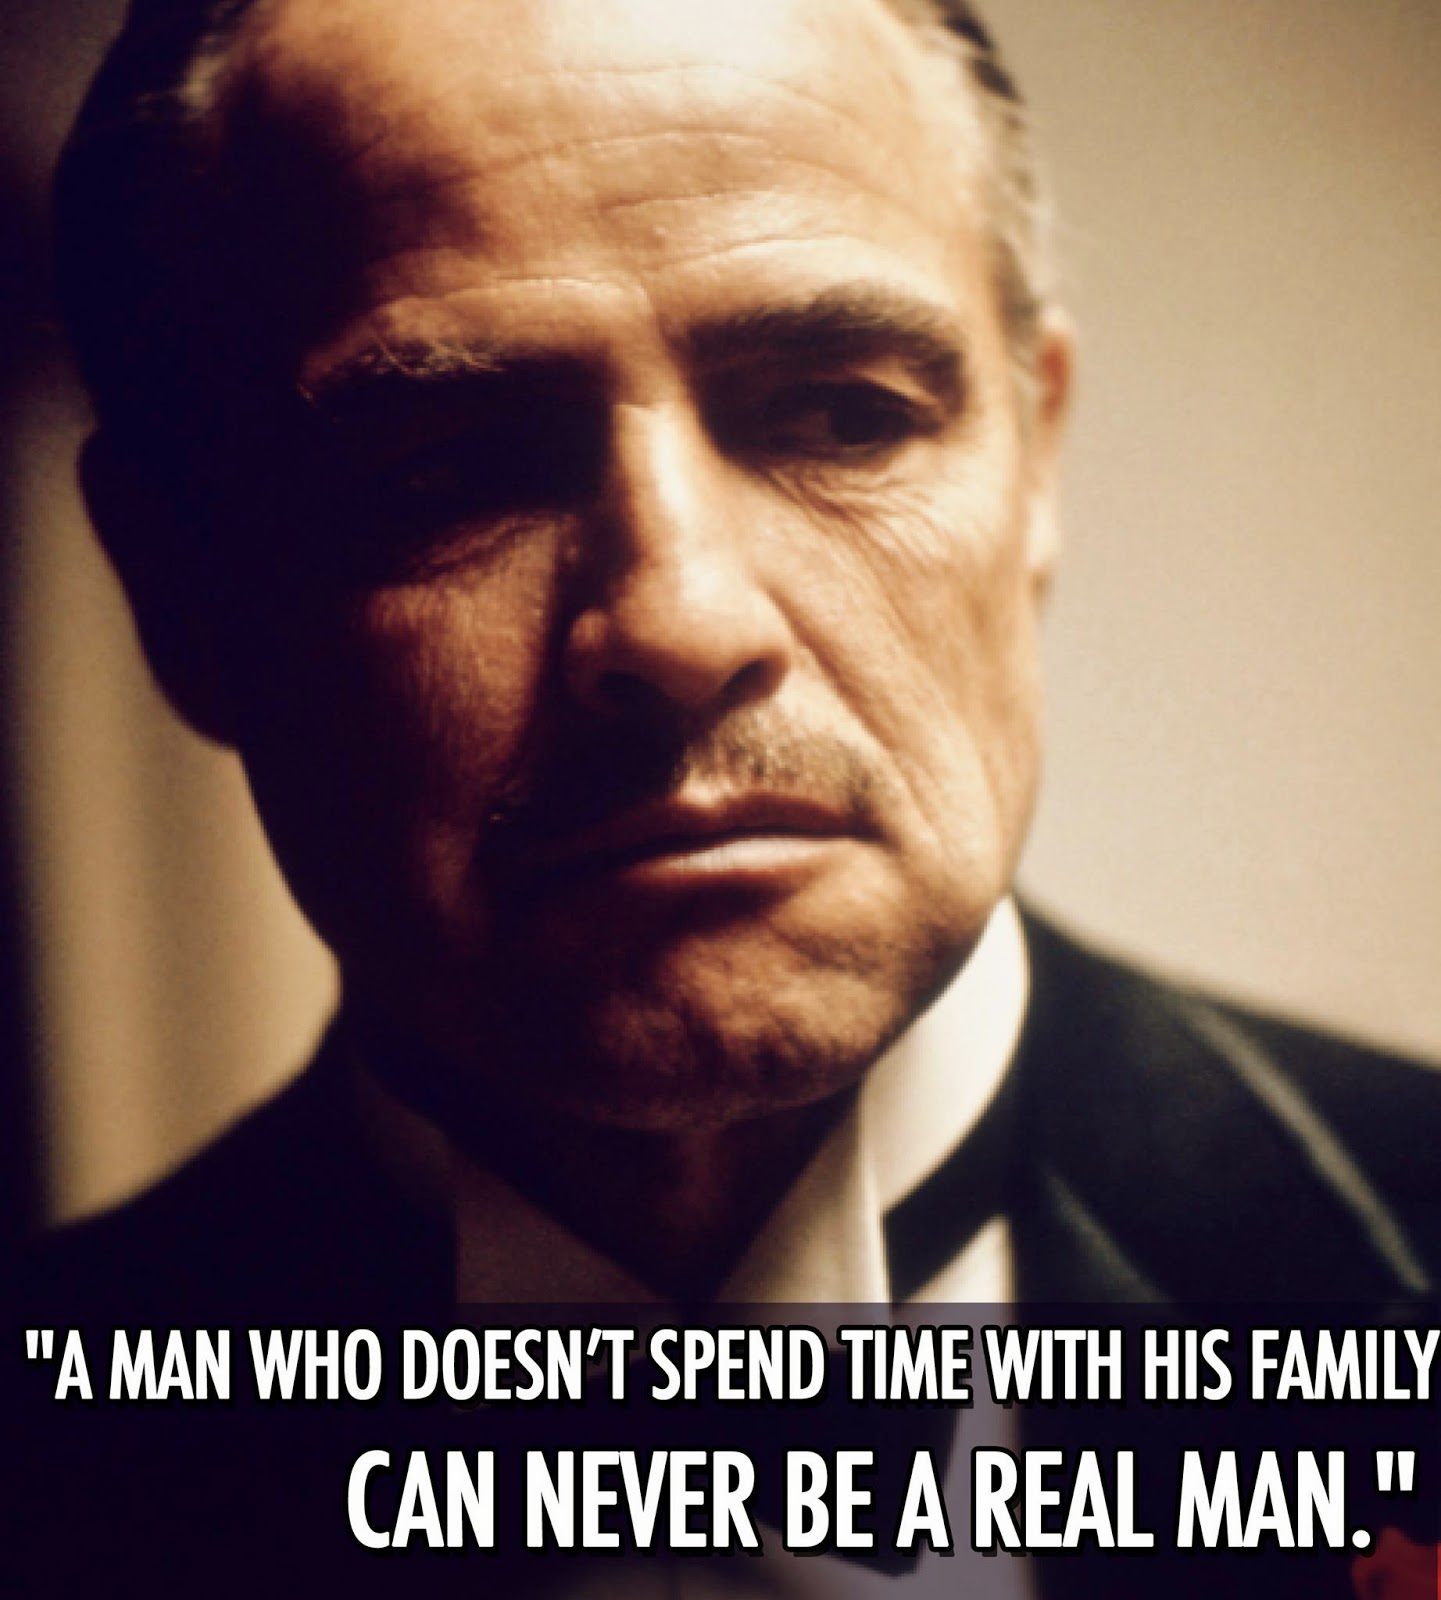 The Godfather Quotes About Family: FILM NeXT: The Godfather (1972